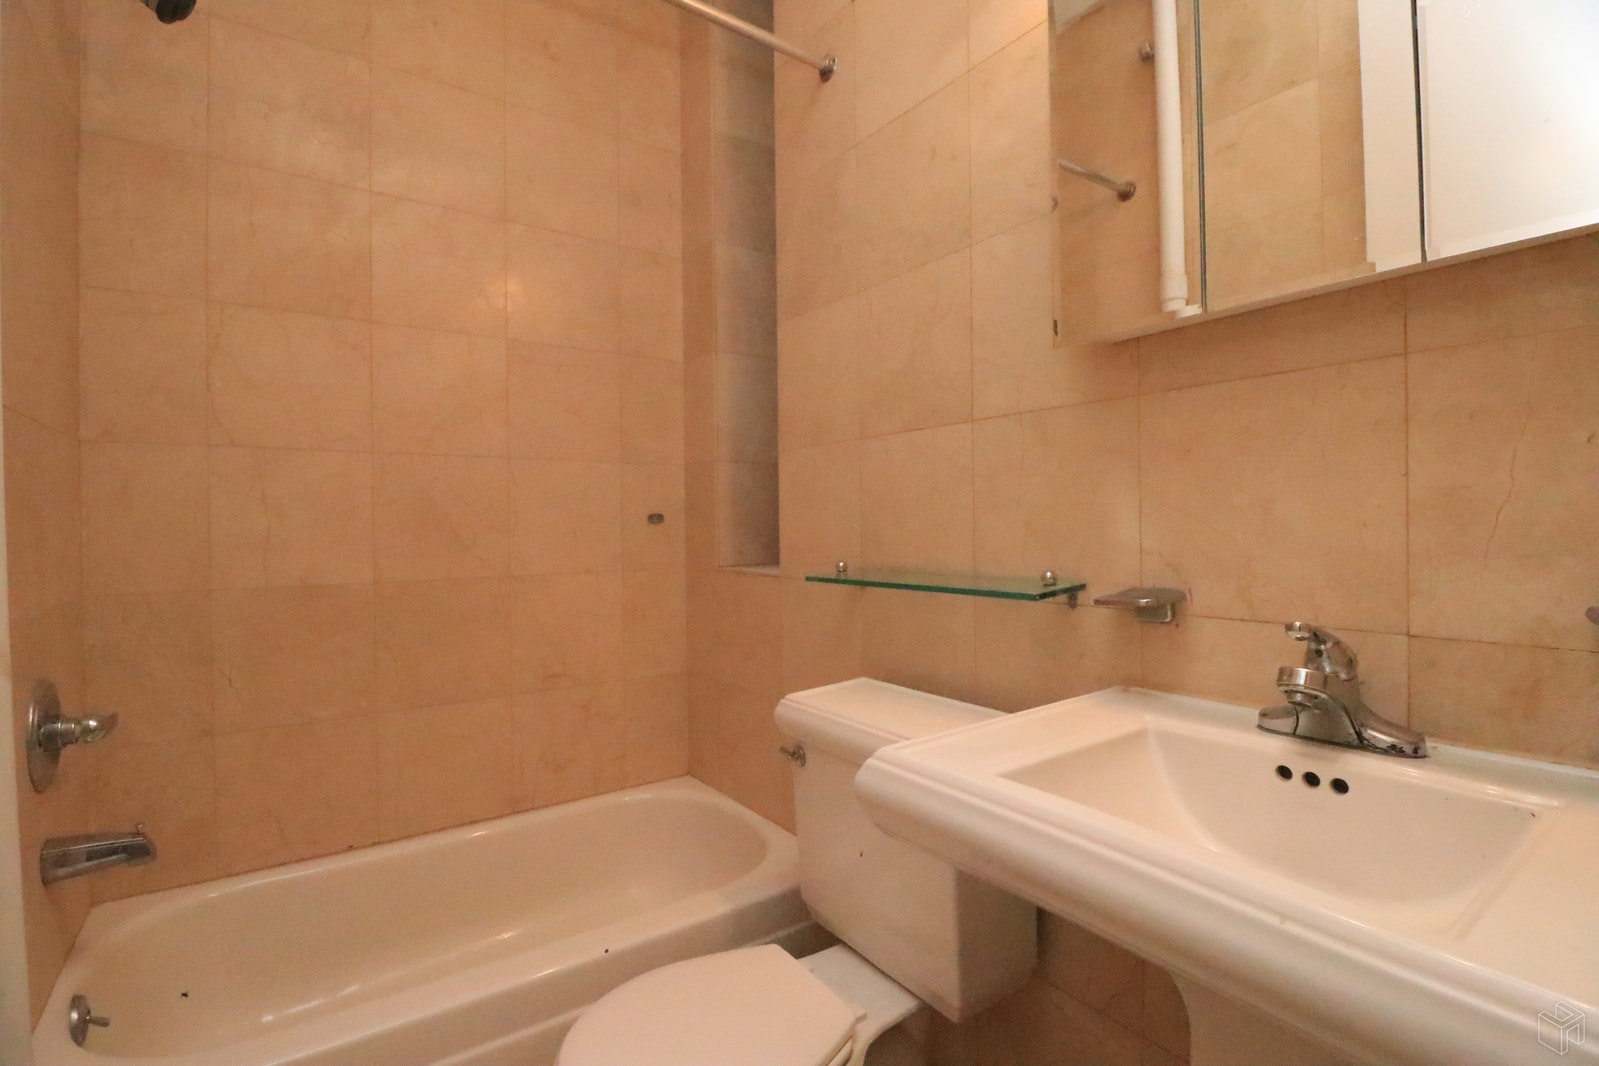 73 East 3rd Street D1, East Village, NYC, 10003, Price Not Disclosed, Rented Property, Halstead Real Estate, Photo 5